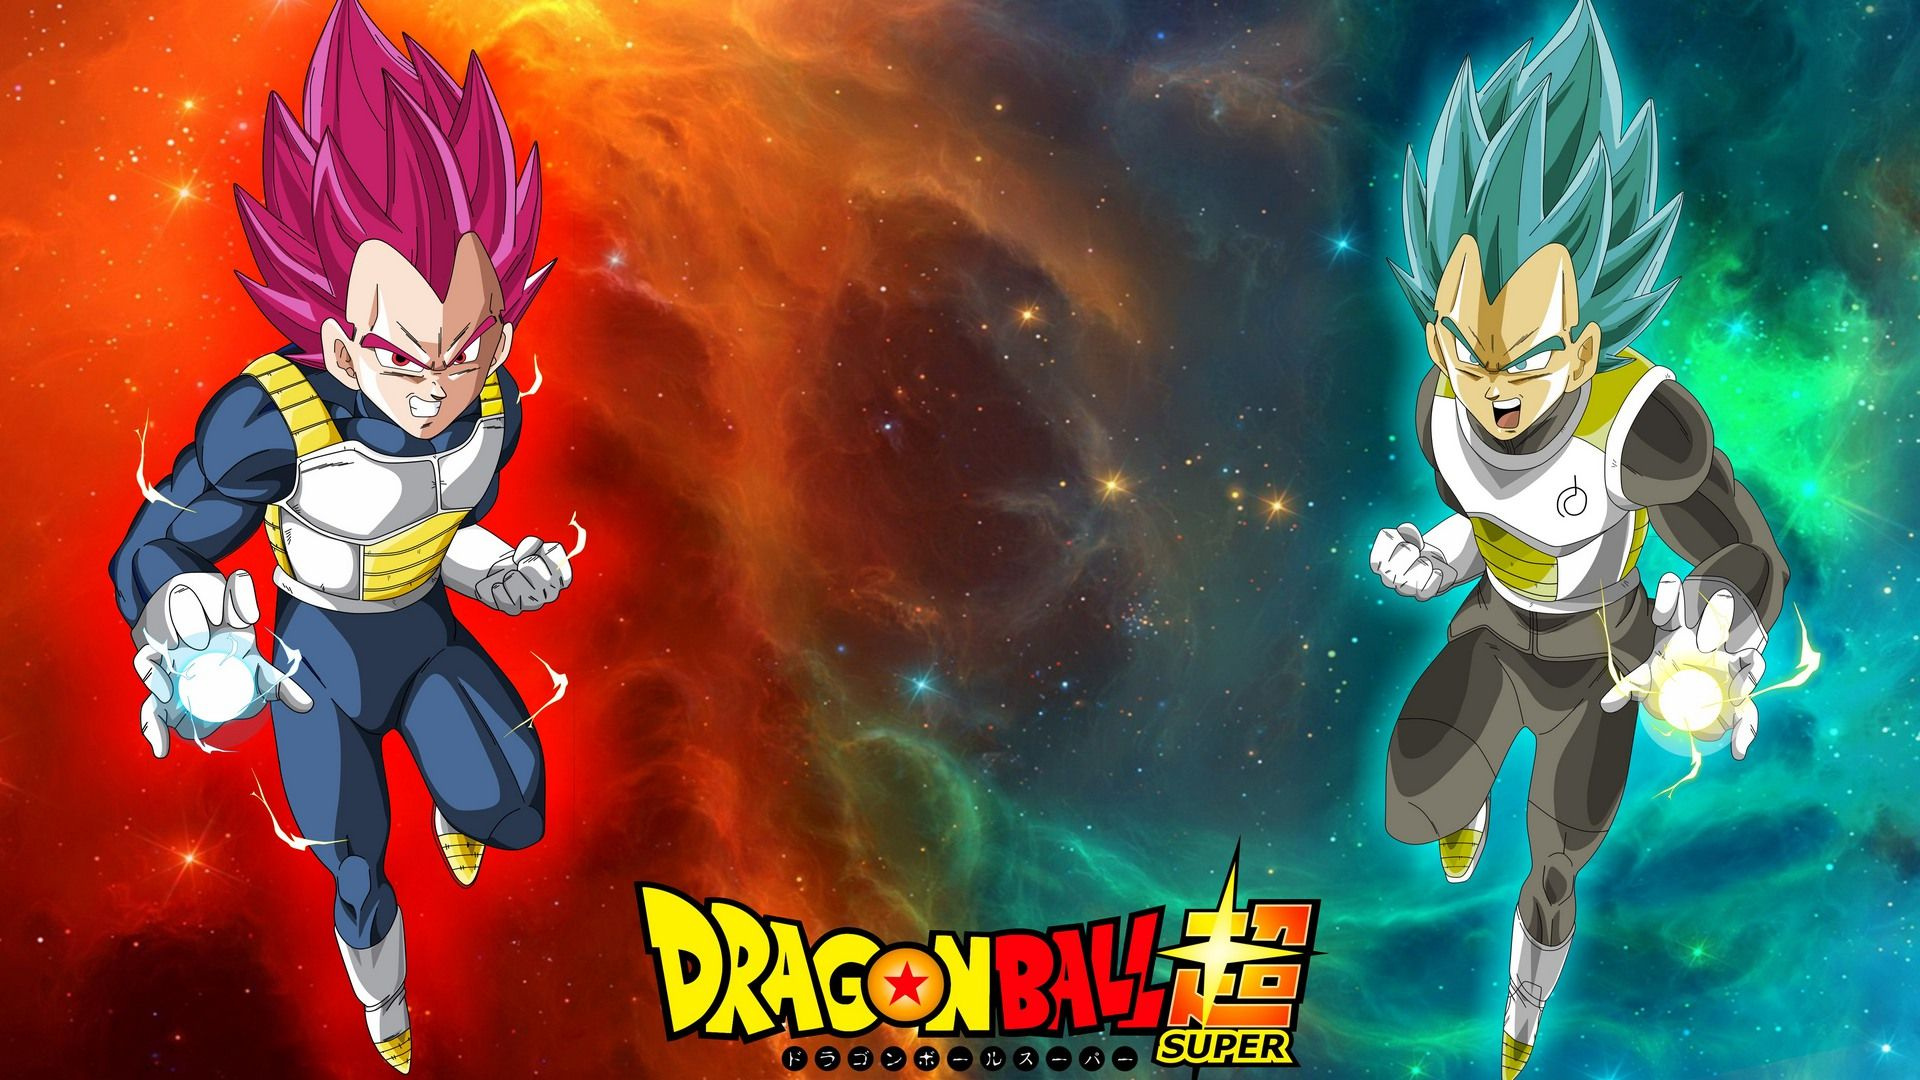 vegeta dragon ball super wallpaper - 2018 wallpapers hd | pinterest